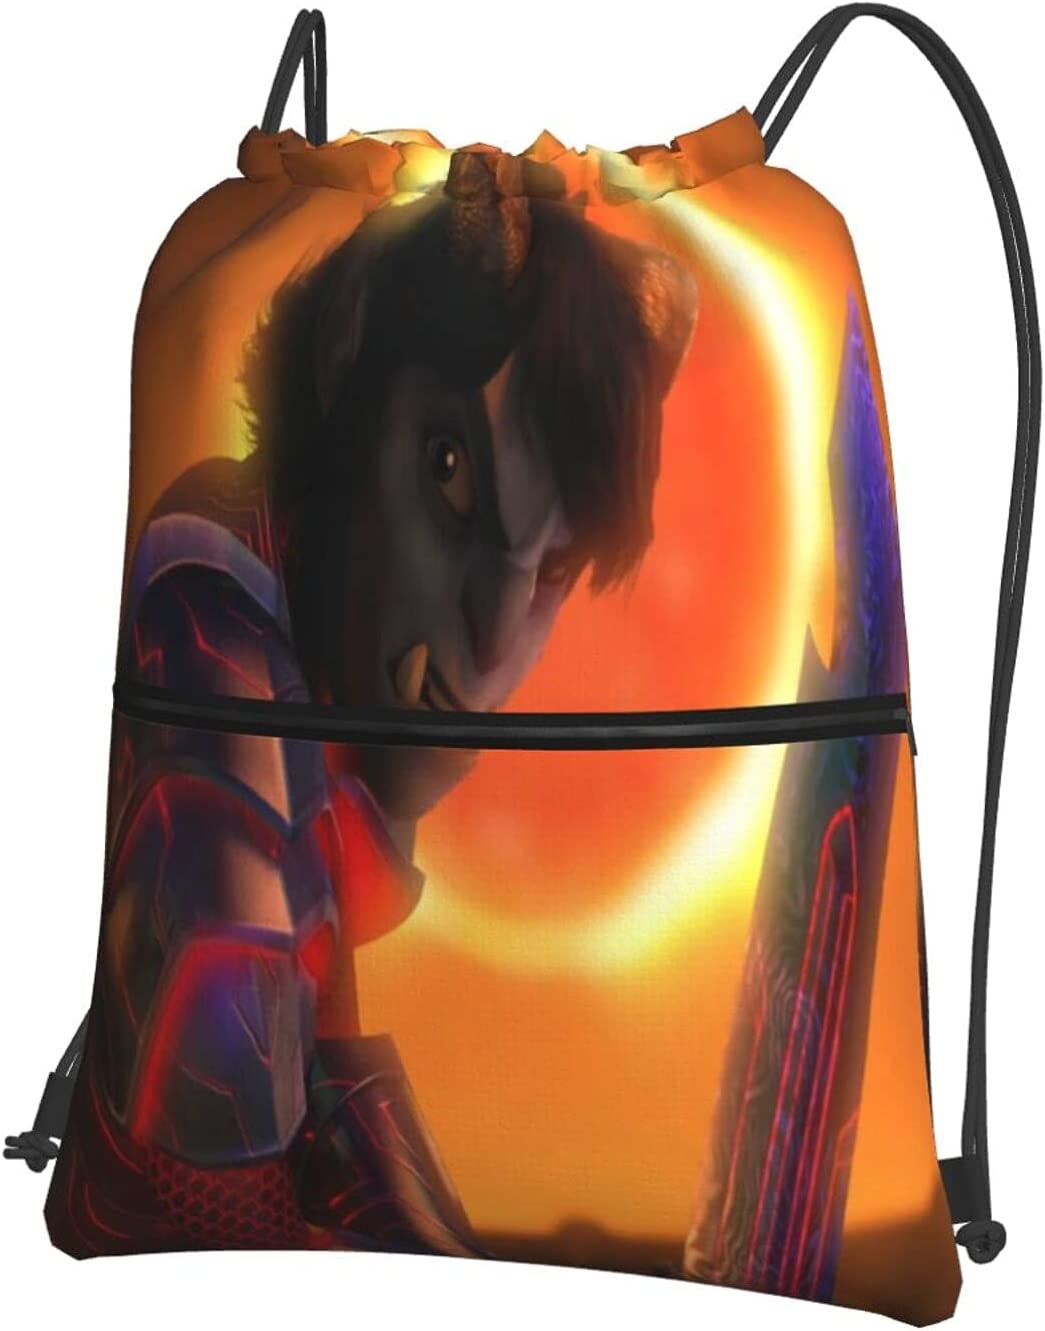 Troll-Hunters Rise of the Titans trust Sport Drawstring Backpack Anime safety